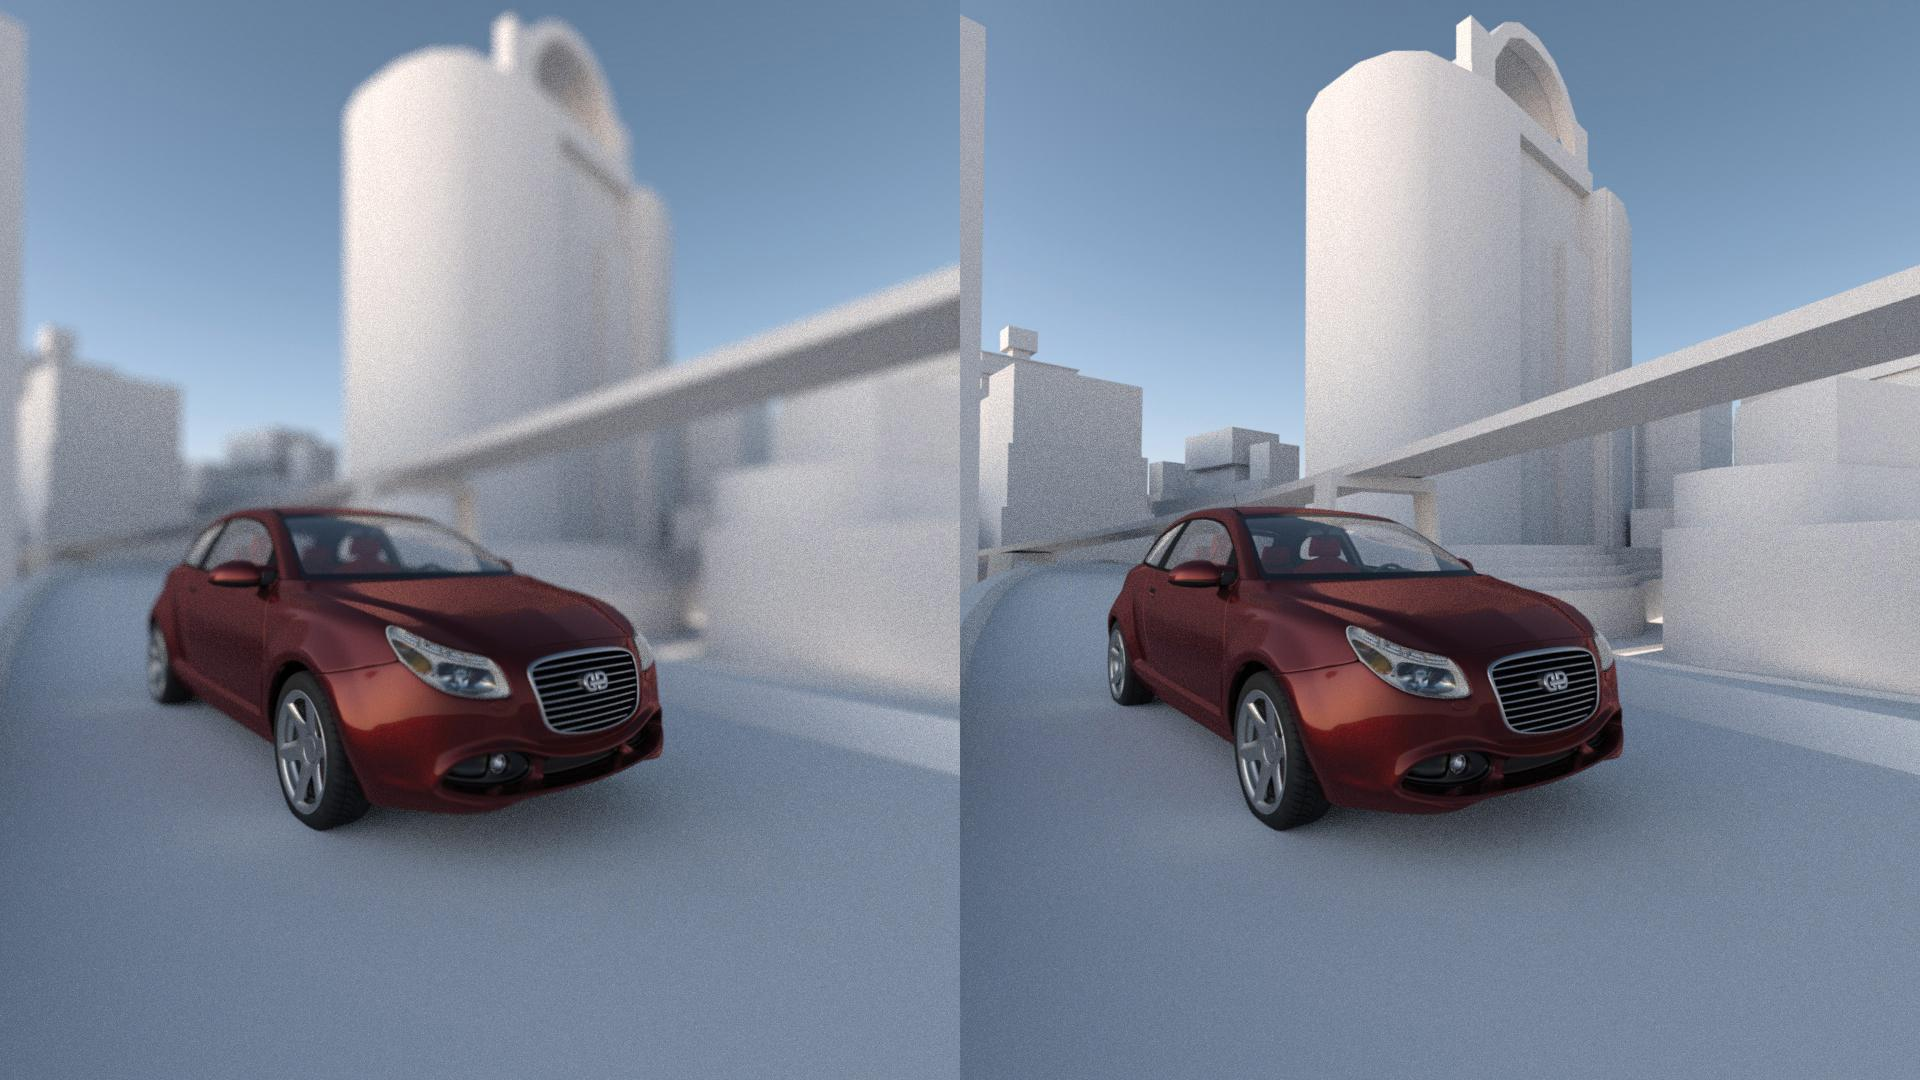 Pair of images of a car driving through a city scene